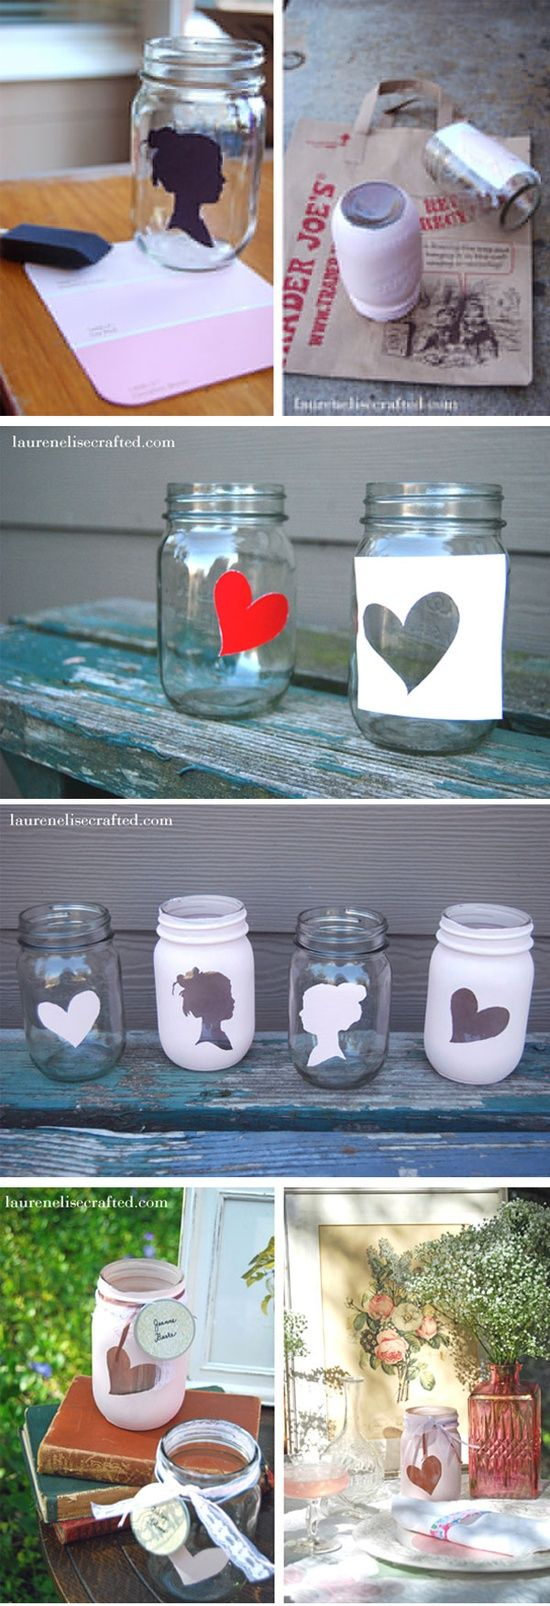 love...great for favors or decorations!